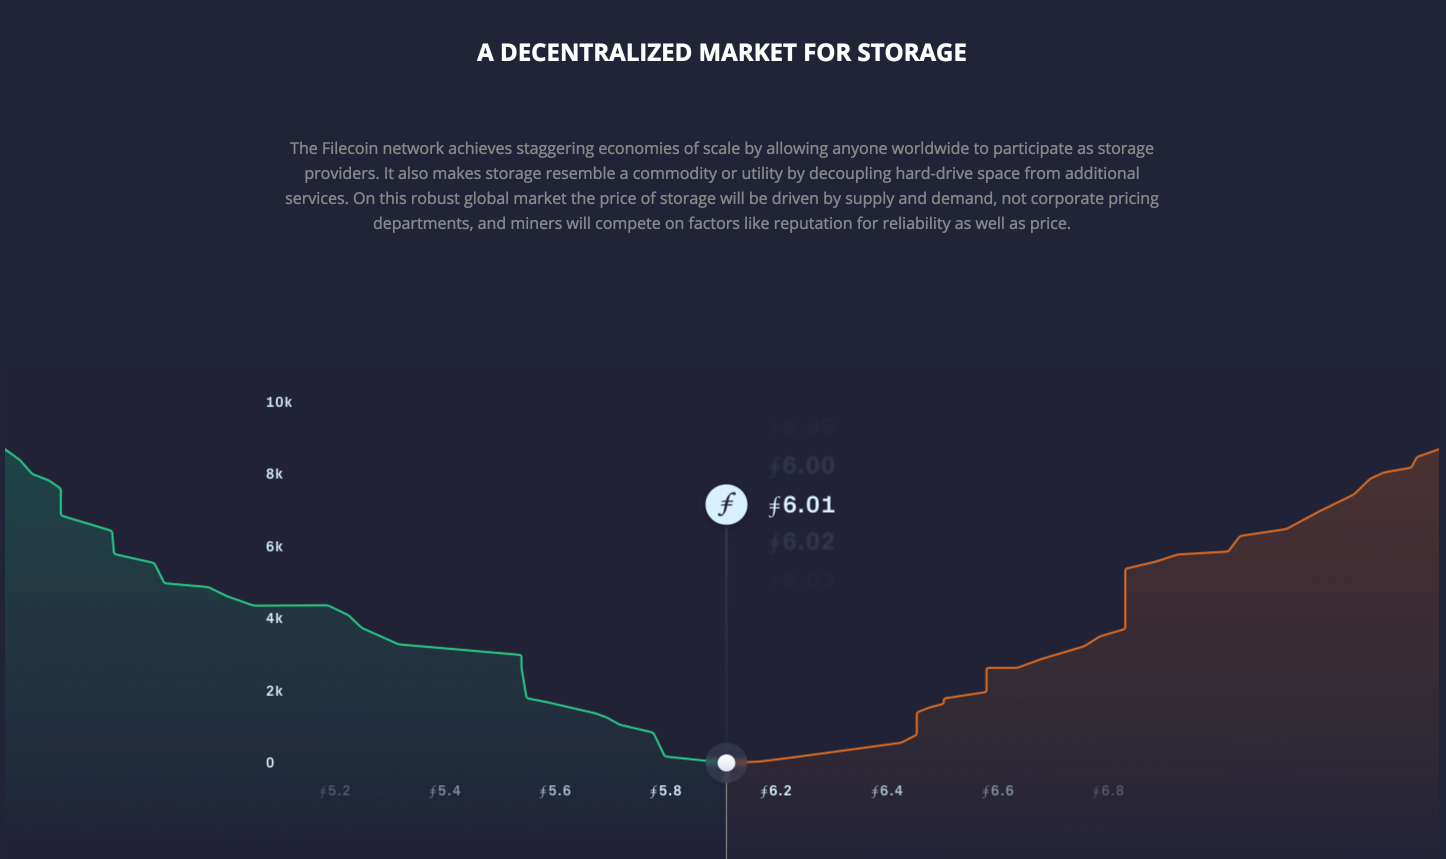 A decentralized market for storage